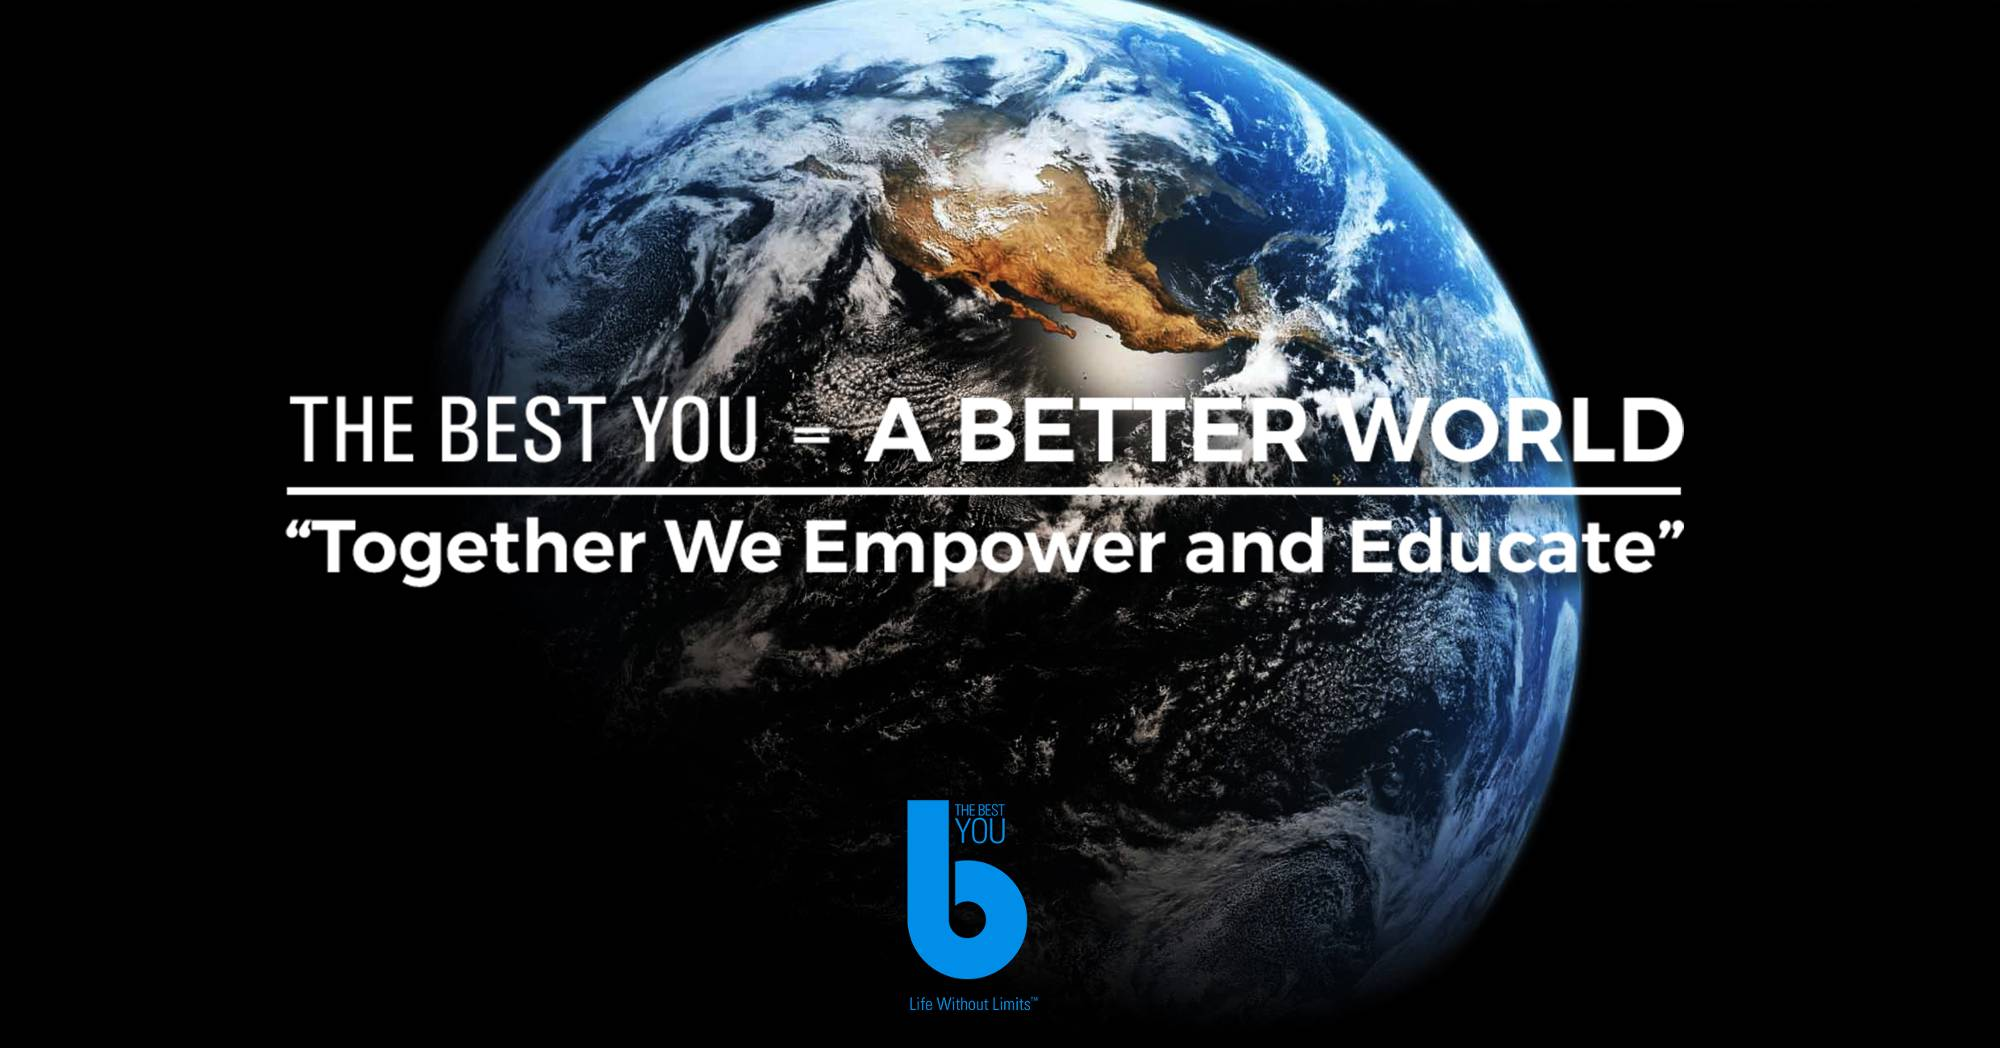 https://thebestyouexpo.com/dl/wp-content/uploads/tby-expo-better-world.jpg